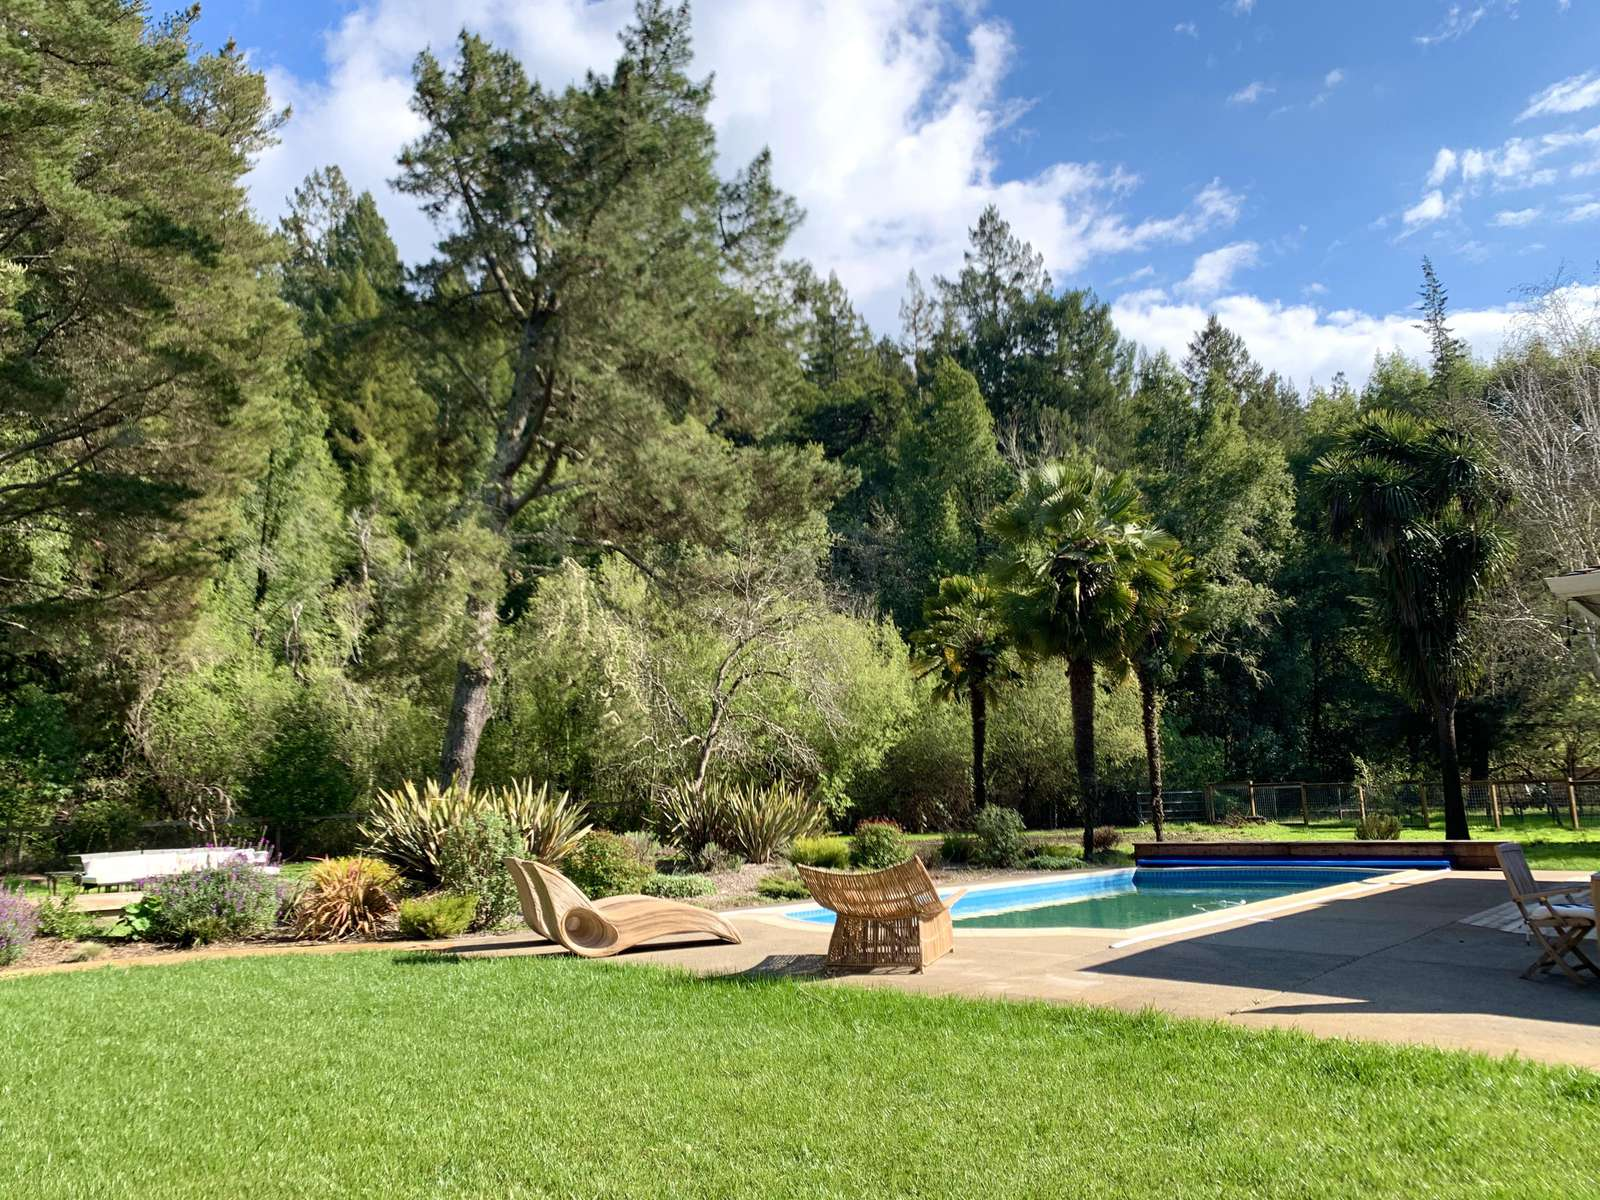 Rear fenced yard and pool area